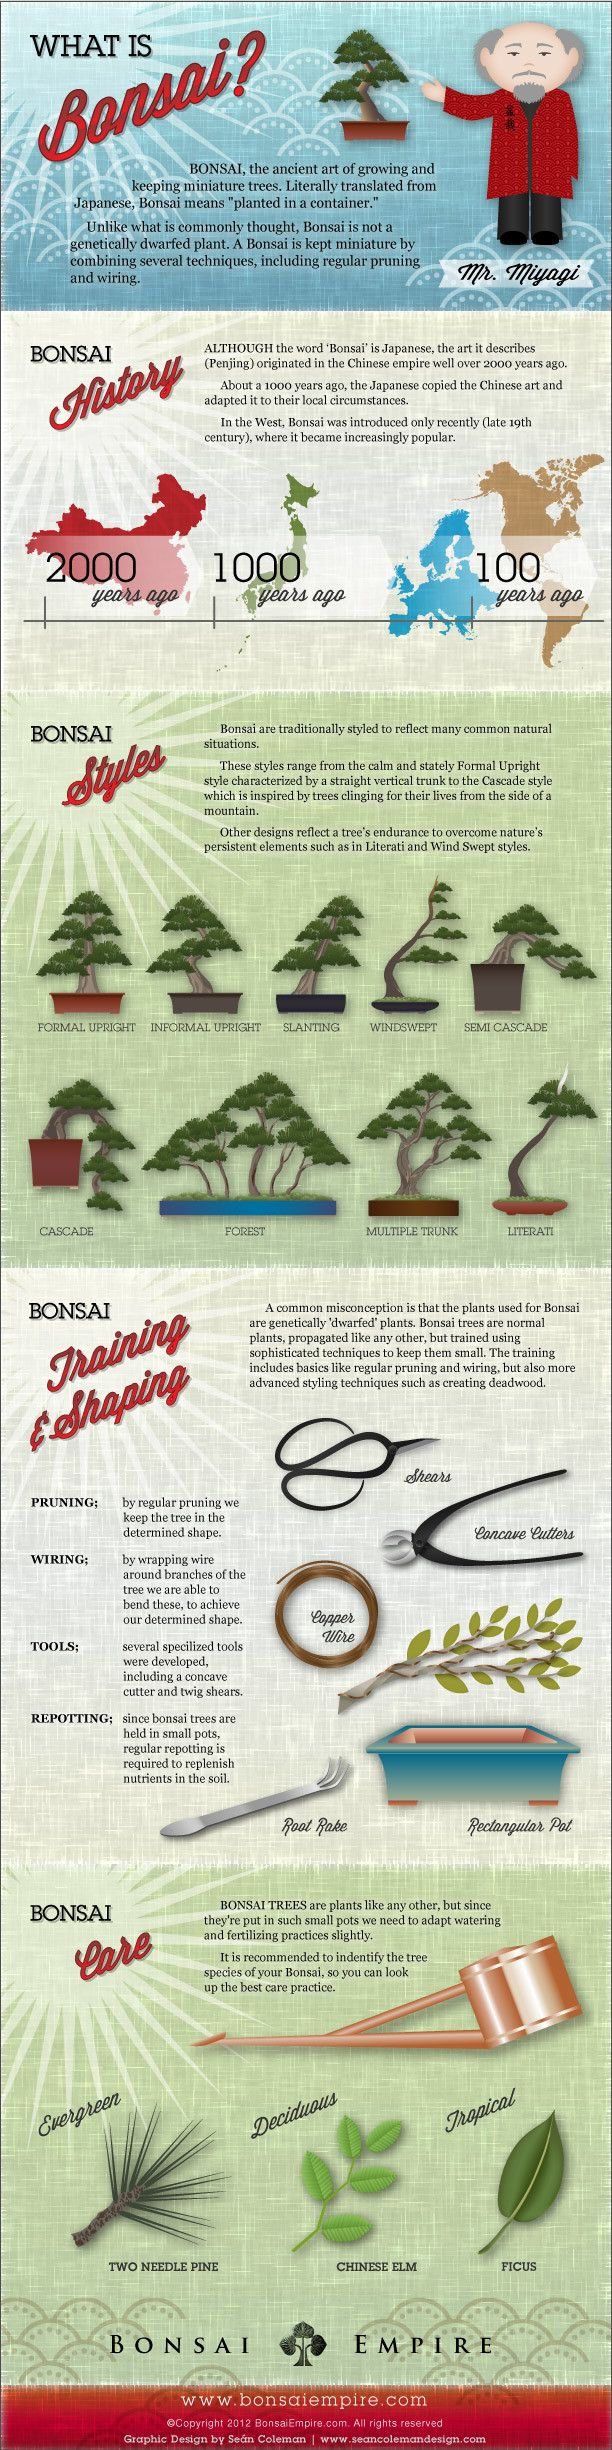 33 best The Ultimate Gardening Tips images on Pinterest